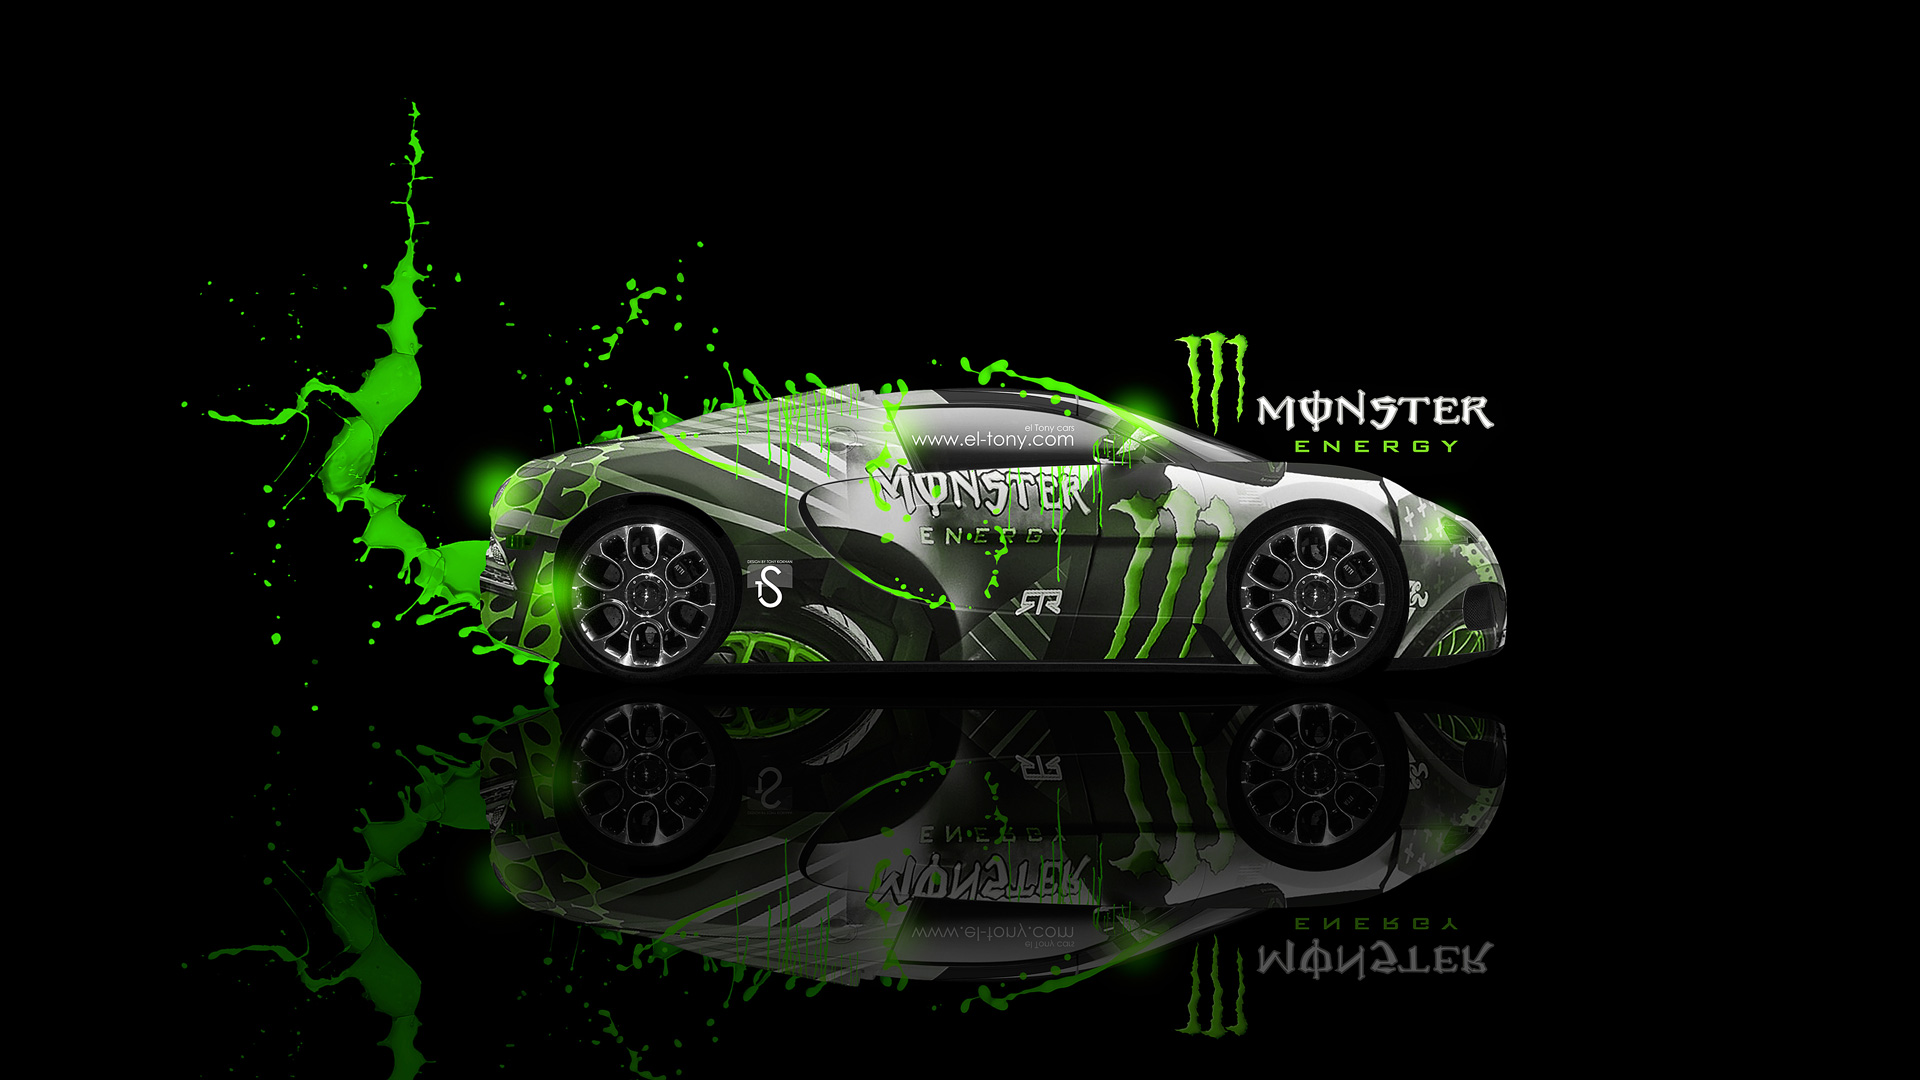 ... Monster Energy Bugatti Veyron Fantasy Car 2013